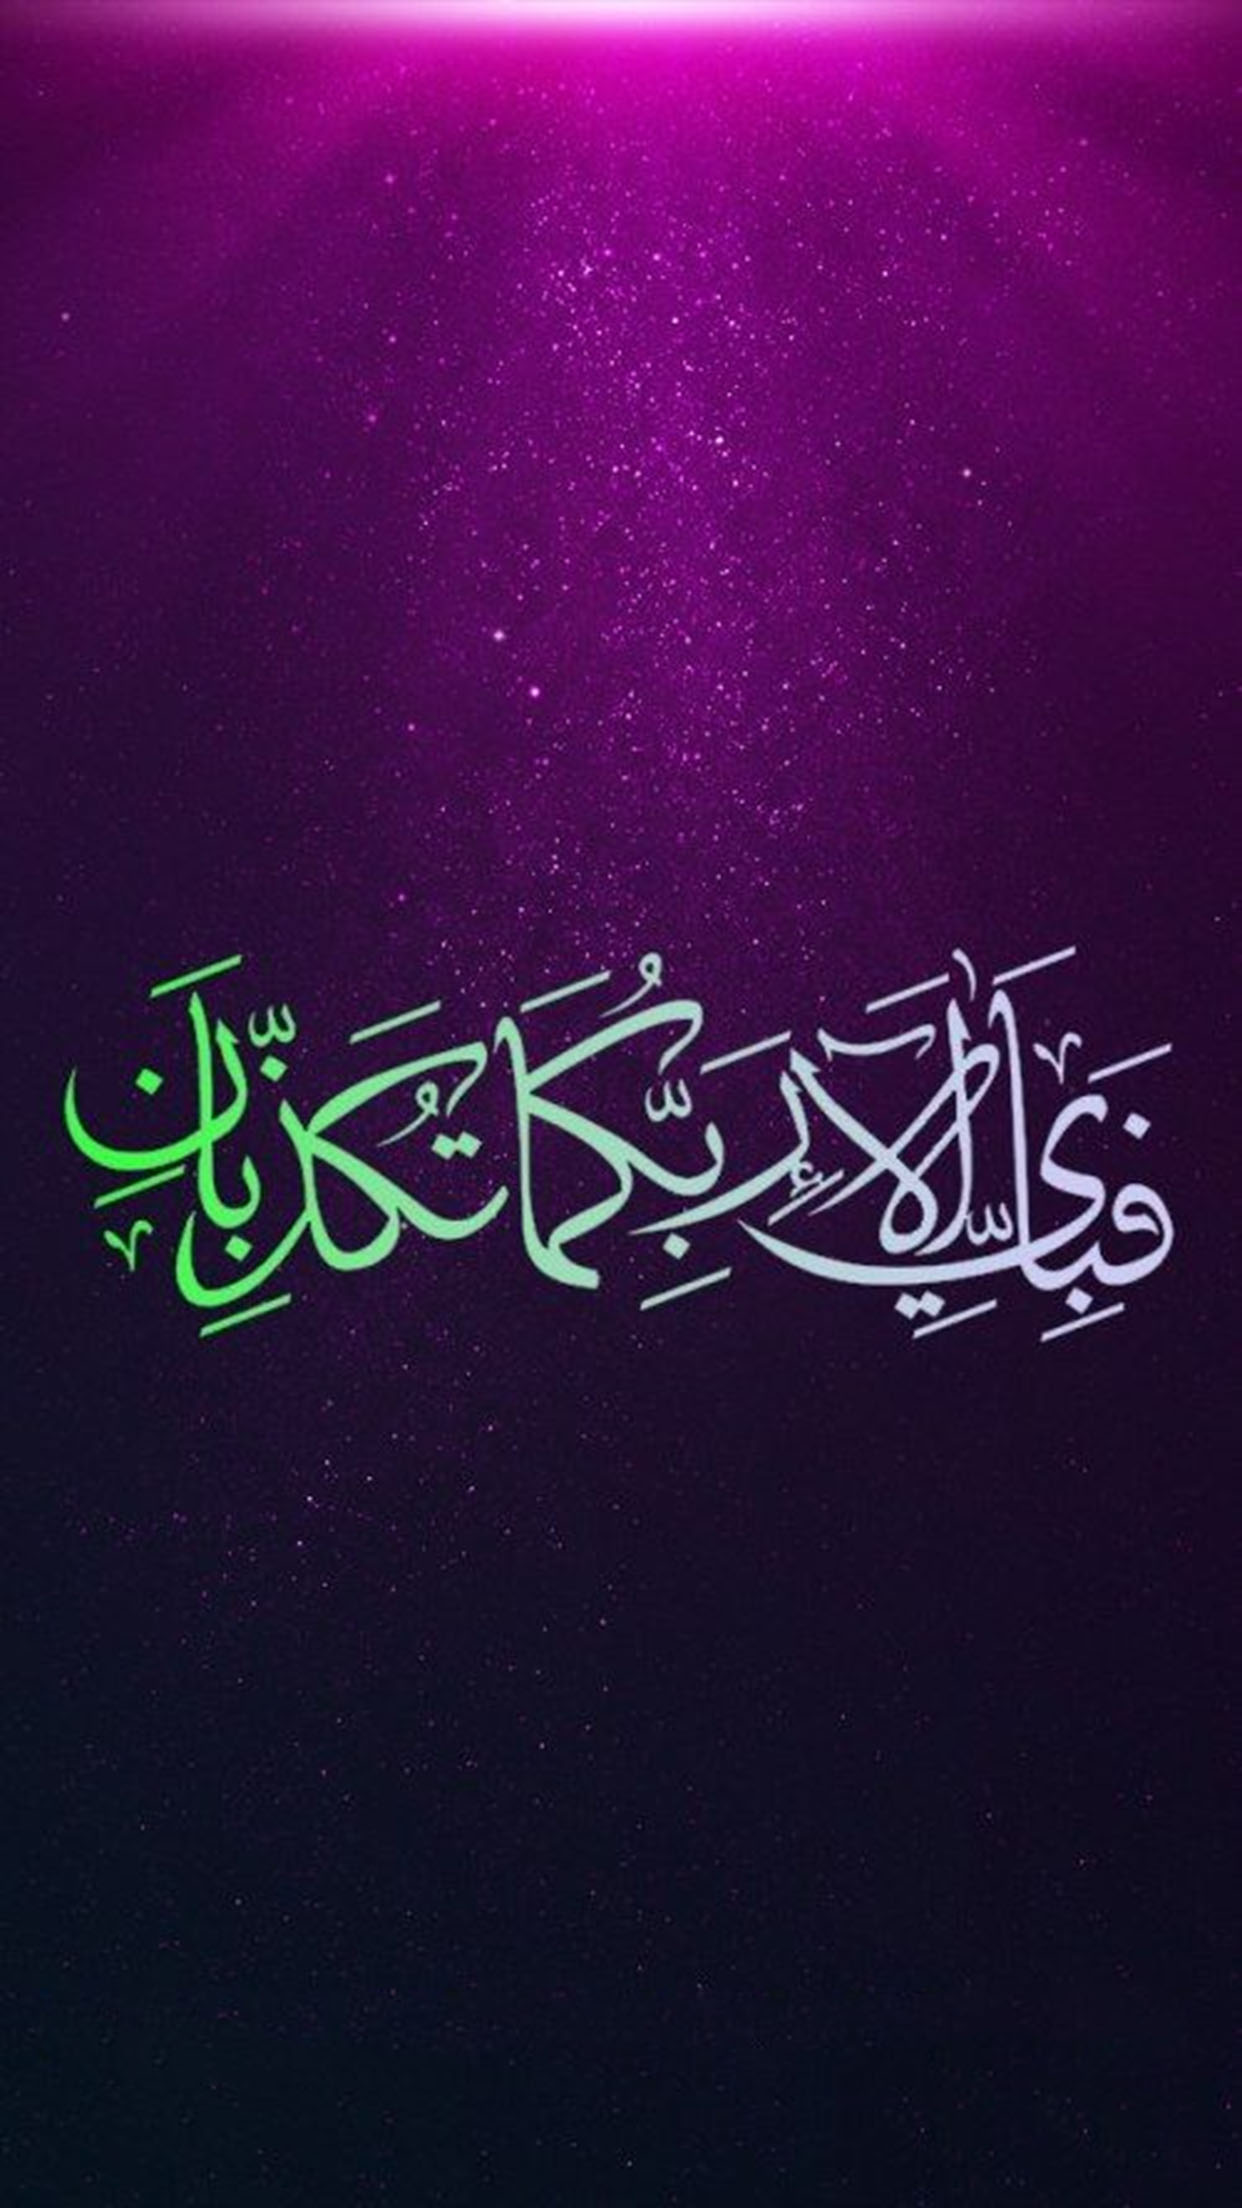 Calligraphie arabe Calligraphie arabe 3 3Wallpapers iPhone Parallax Arabic calligraphy 3